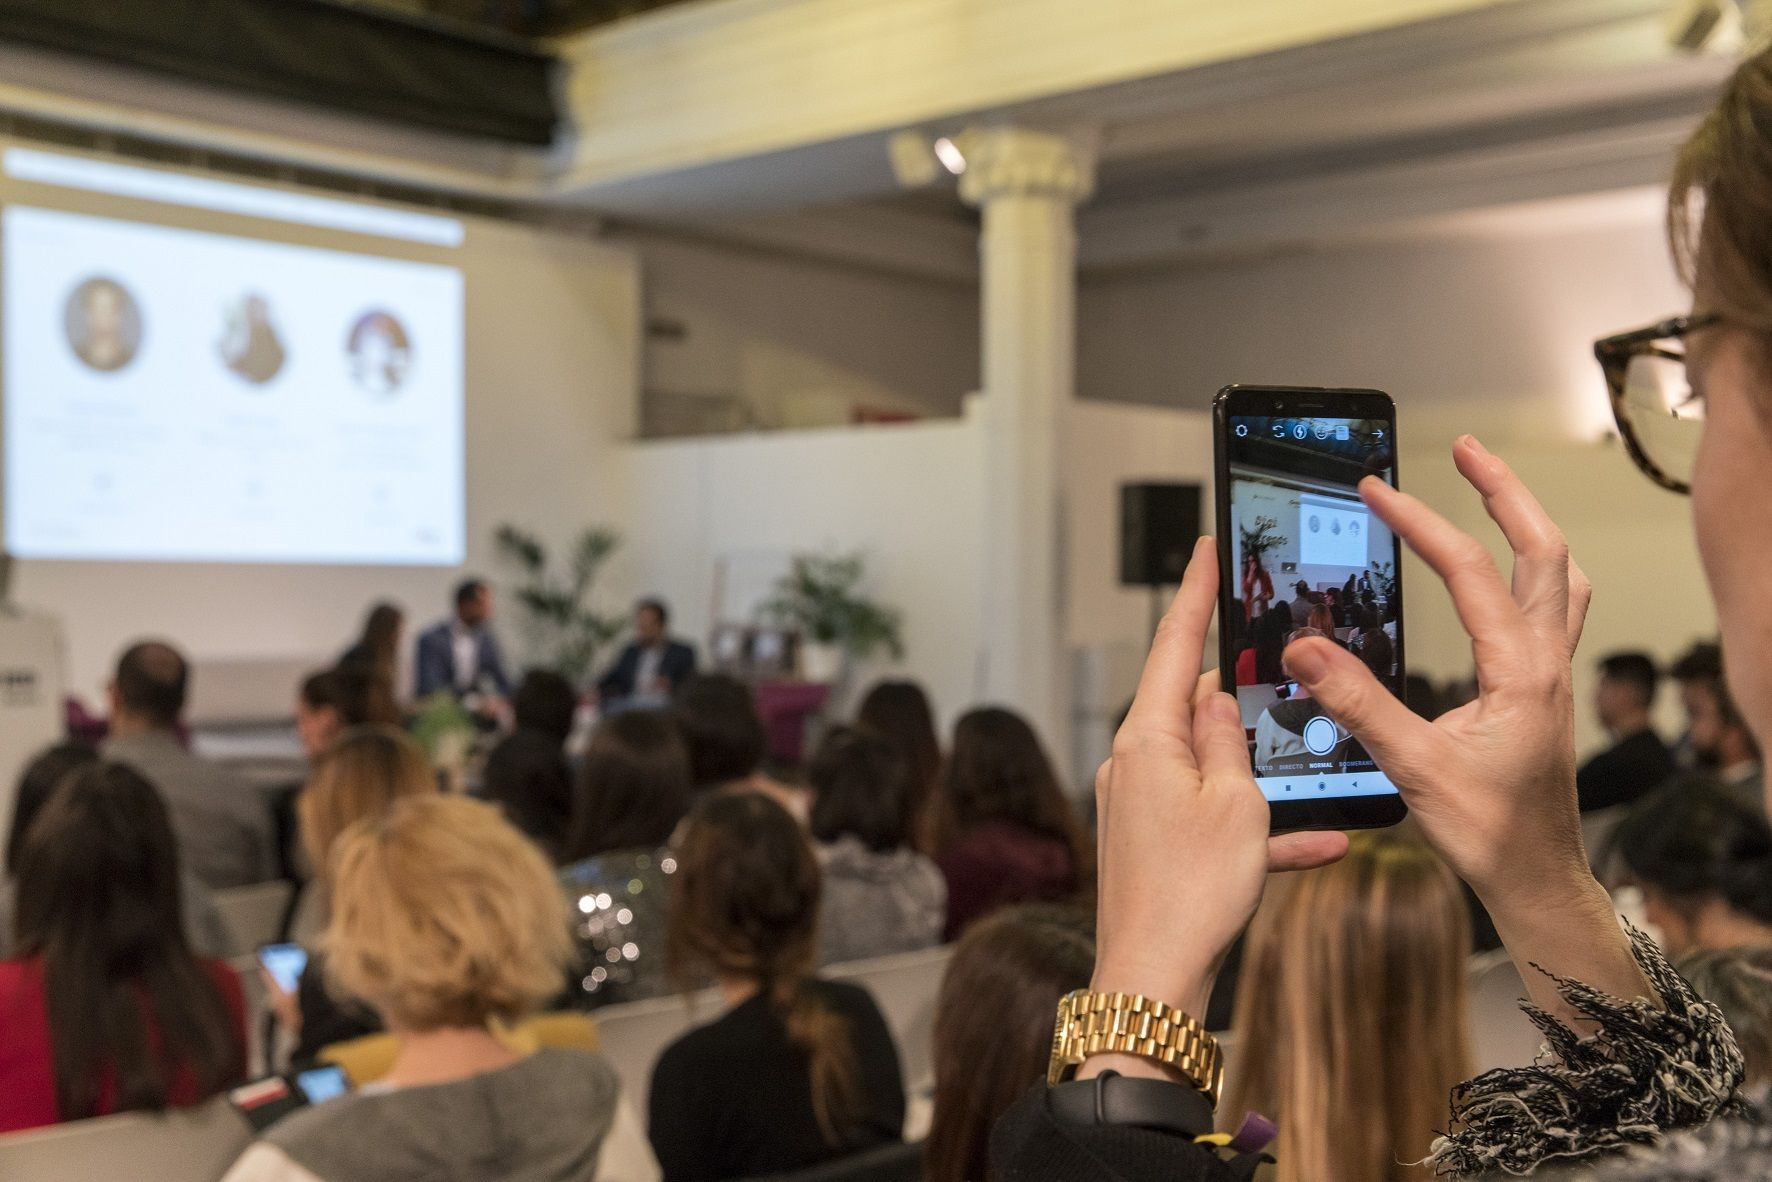 Ecobrands, una cita con la sostenibilidad y el marketing con influencers, en IED Madrid